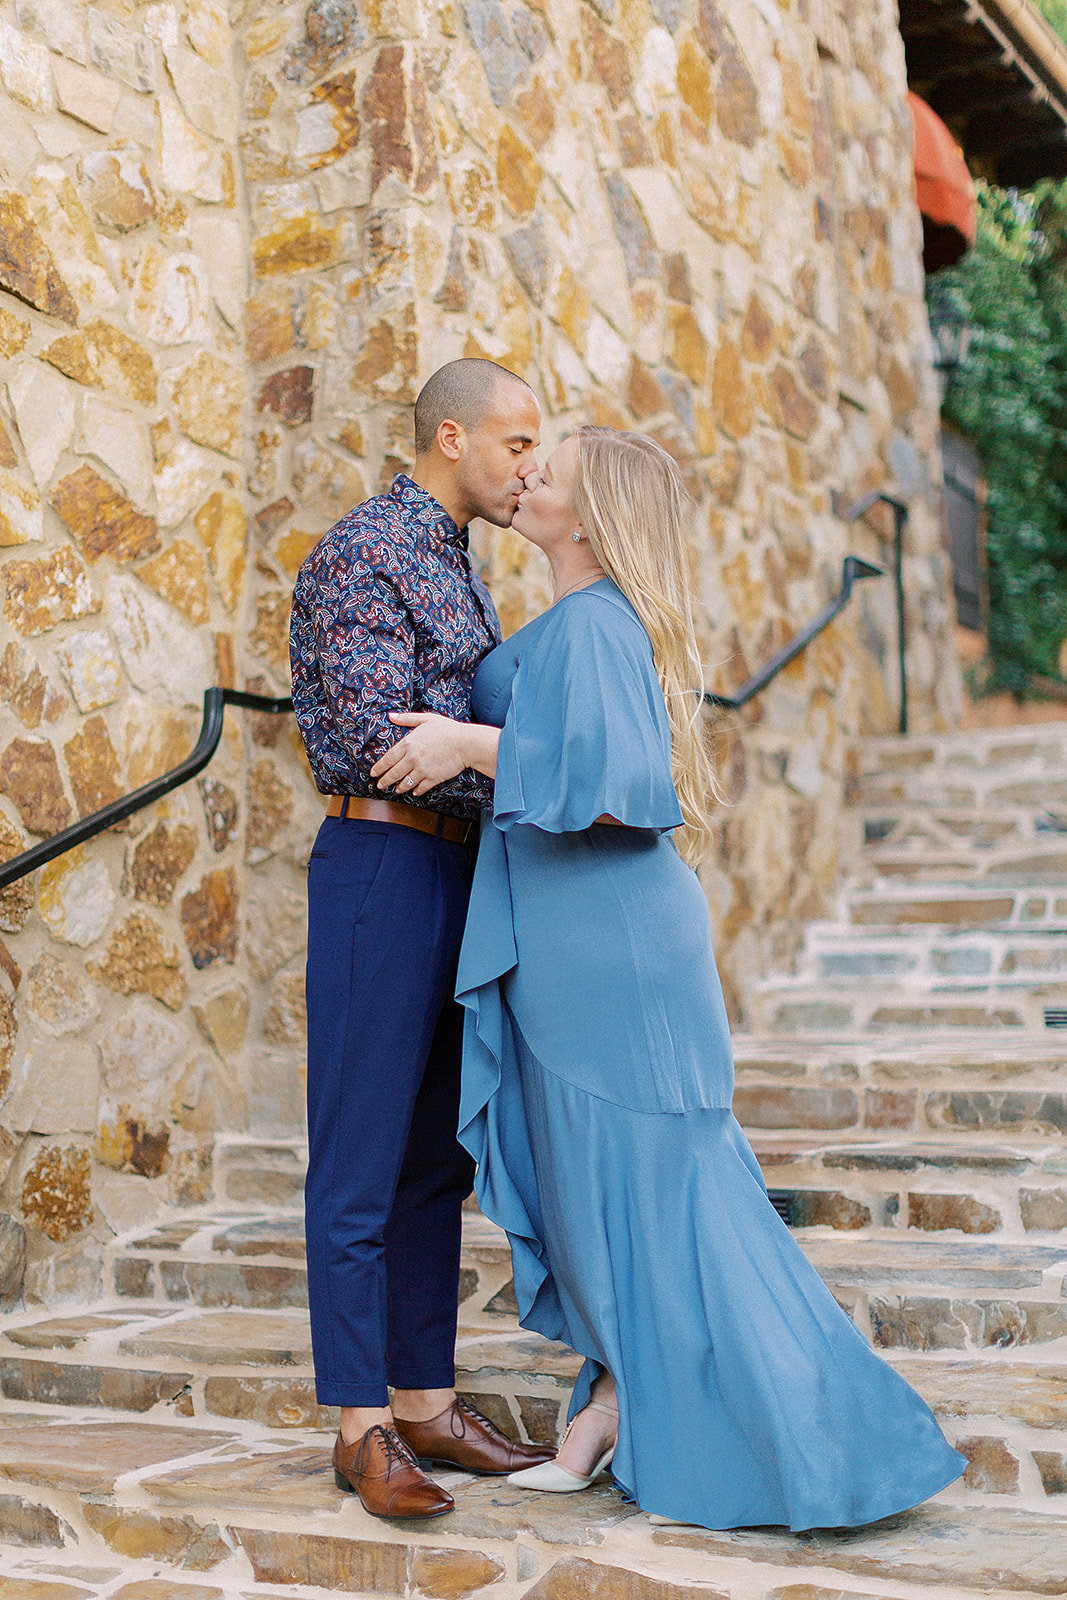 Rachel_+_Manny_Bello_Engagement_Session_Bella_Collina_Photographer_Casie_Marie_Photography-35